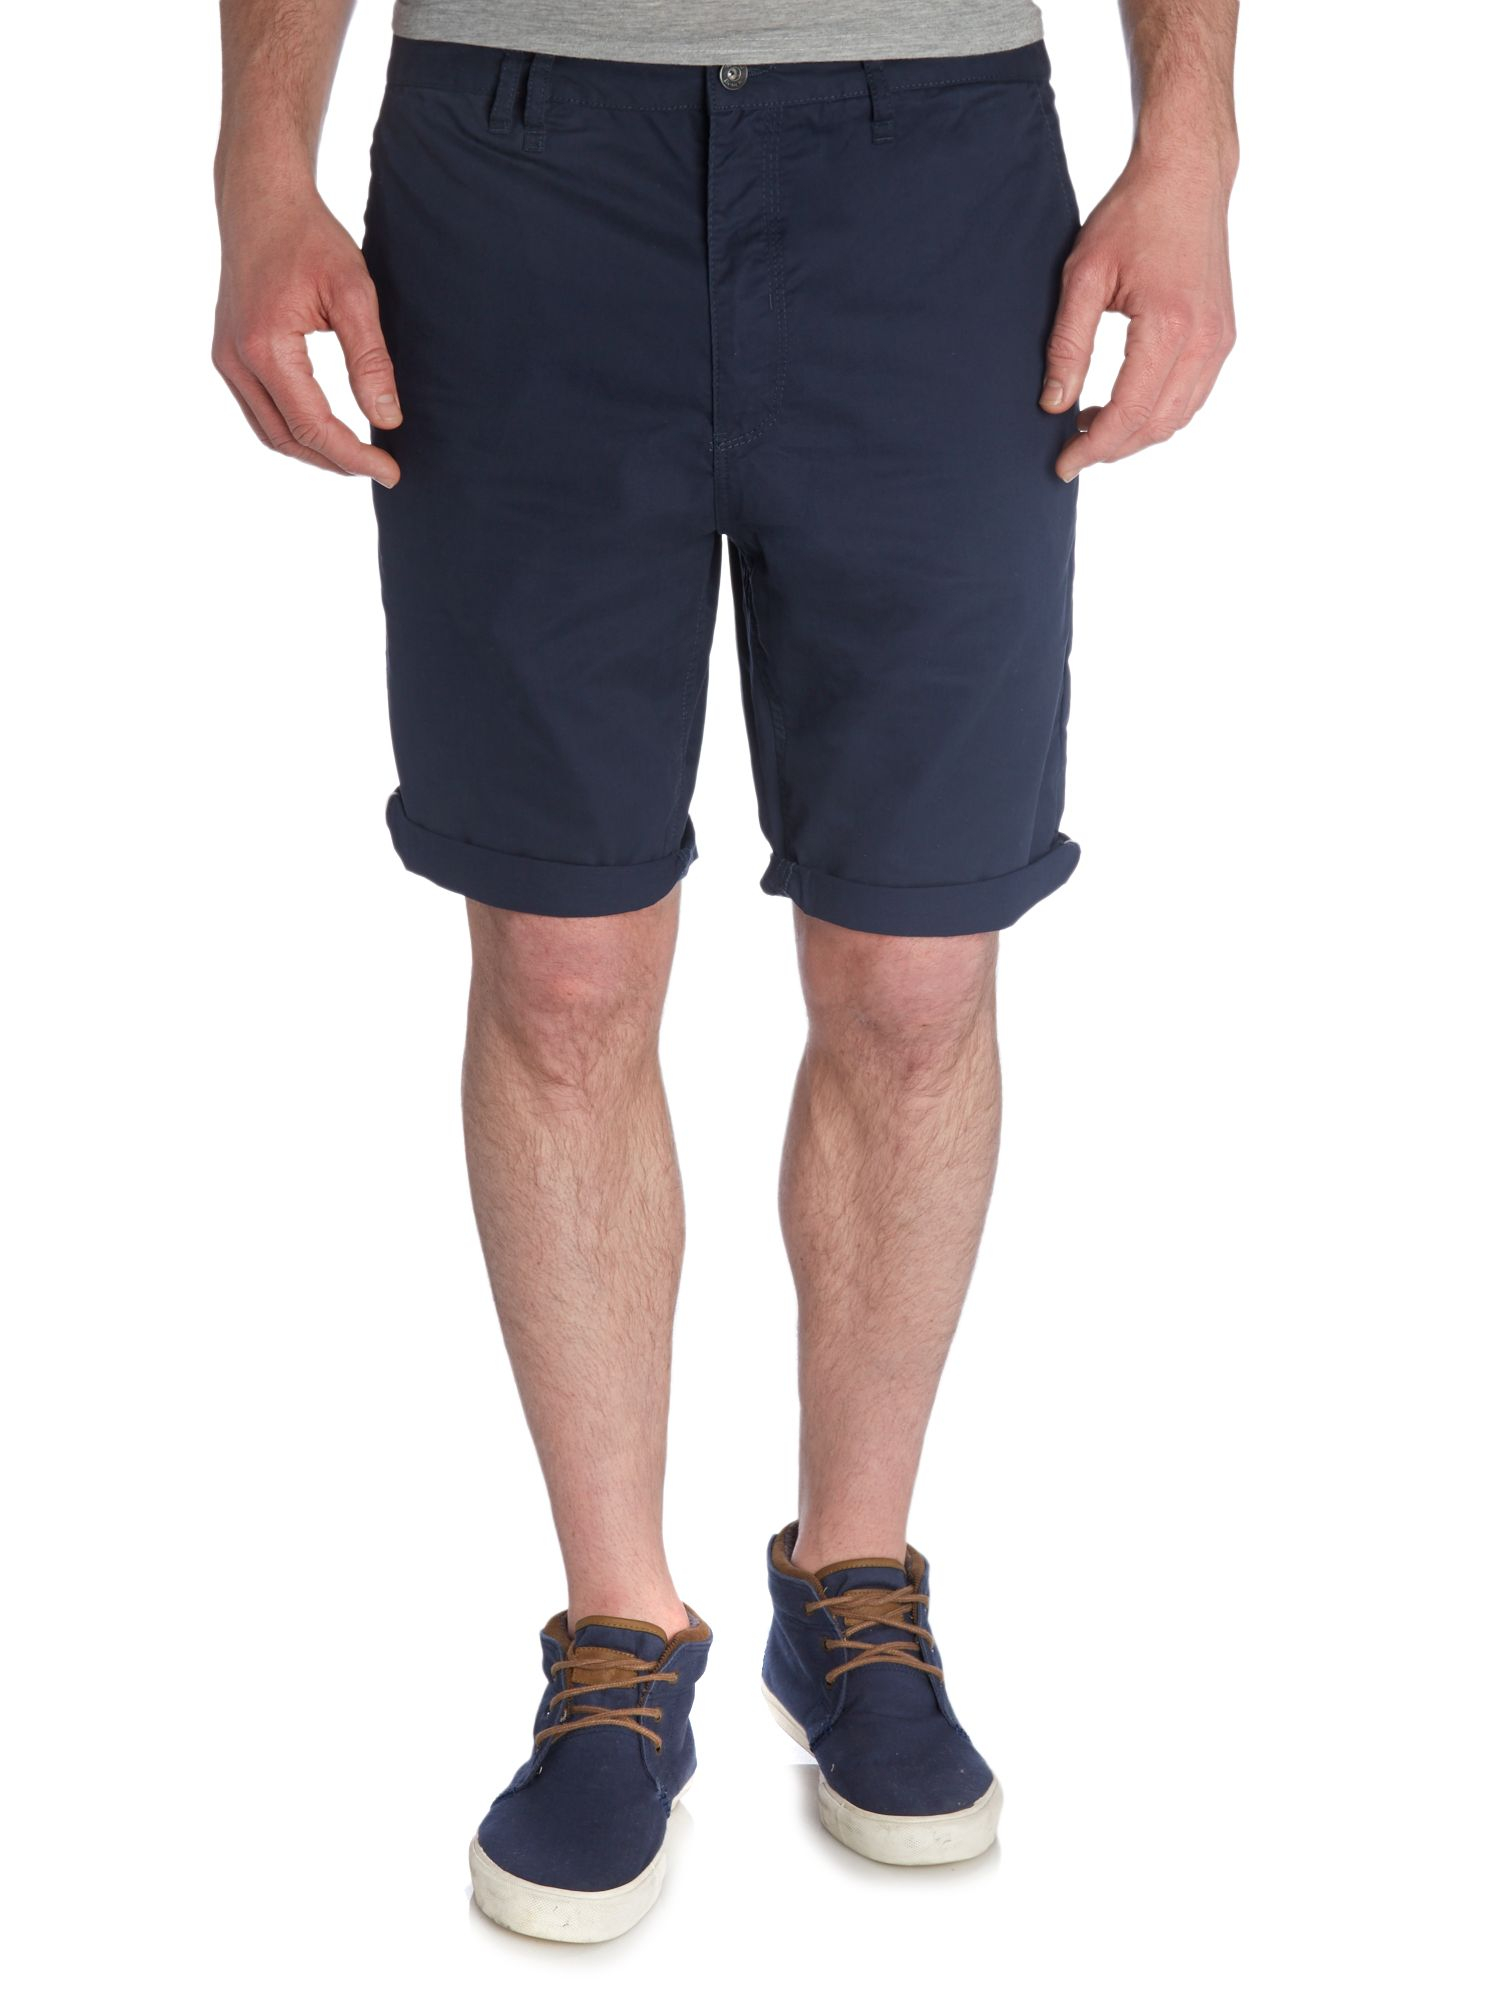 Navy Chino Shorts Mens - The Else